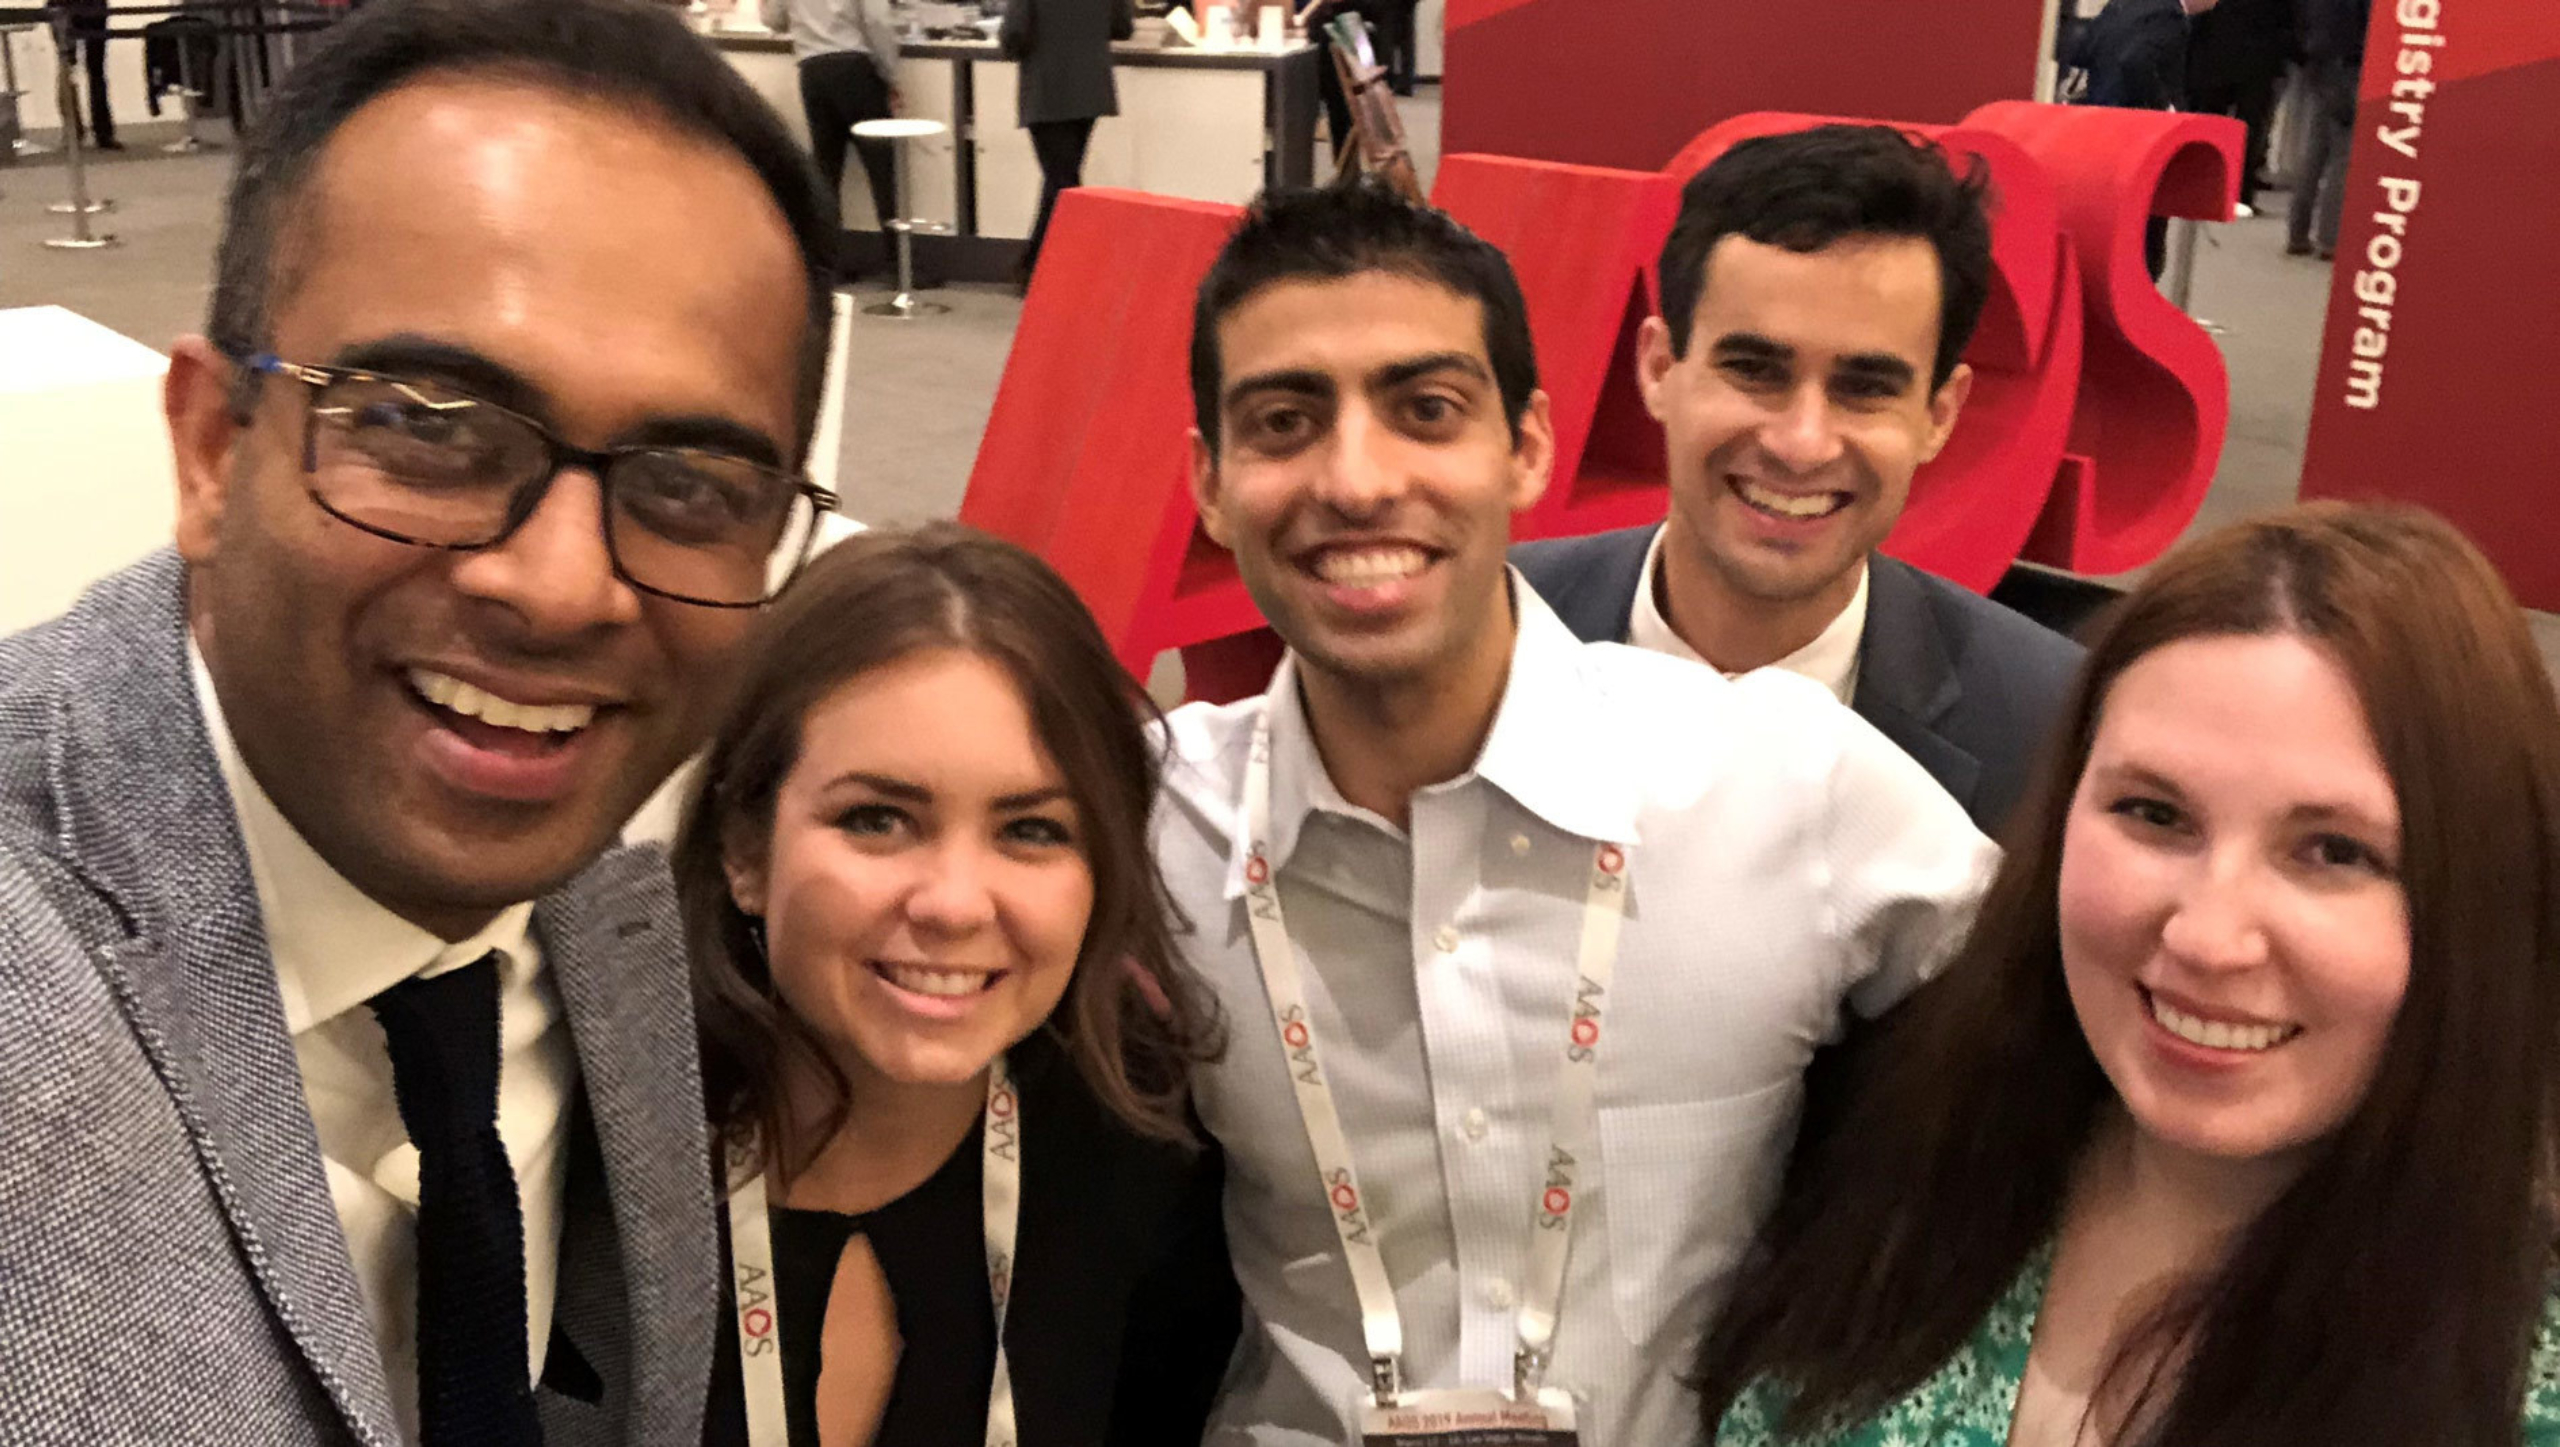 Value-Based Health Care fellows in a group at a conference.